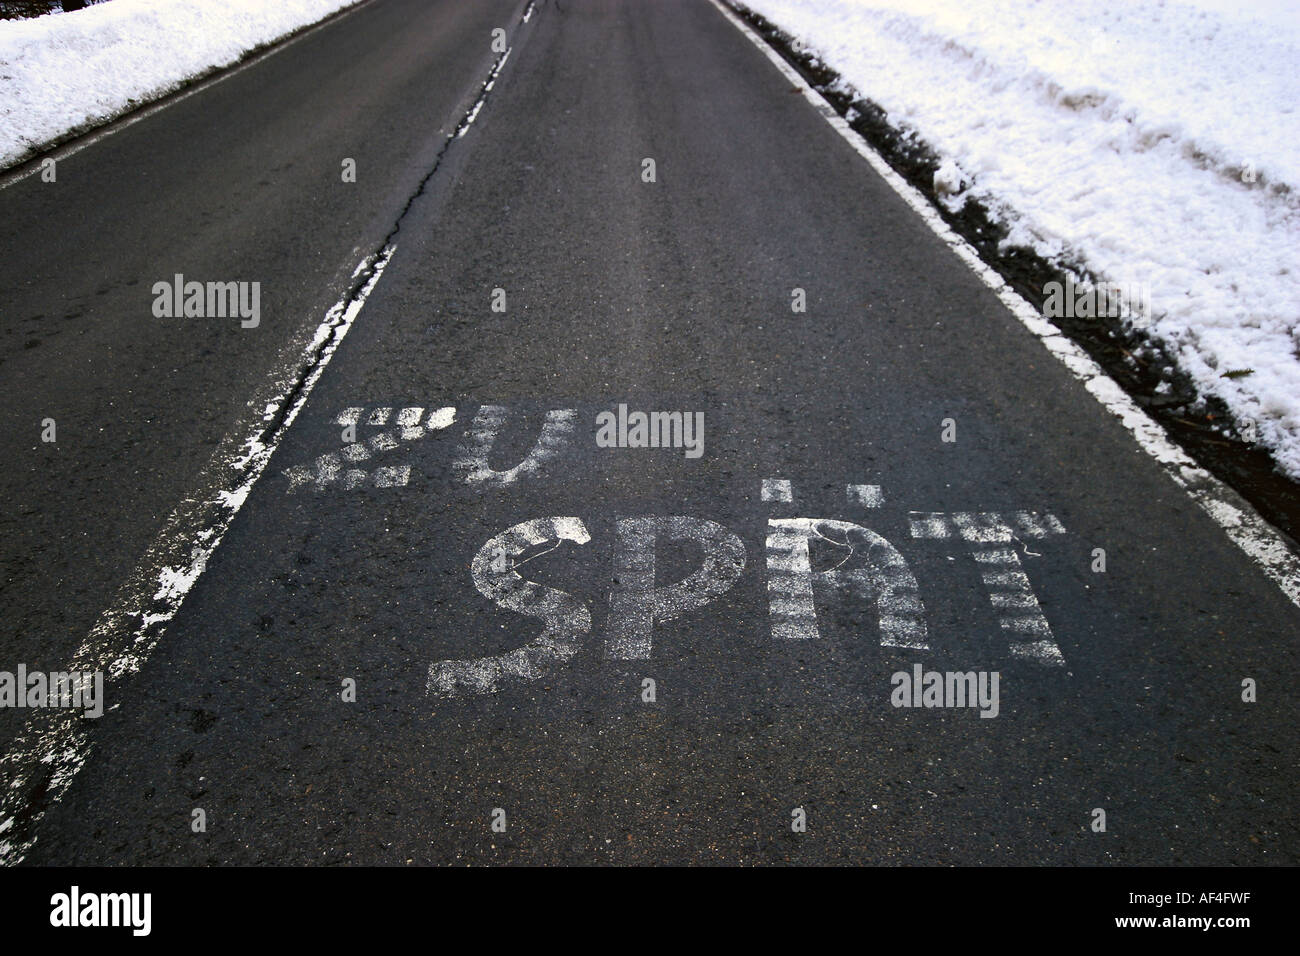 Characters 'zu spaet' means 'too late' written on the asphalt of a road - Stock Image